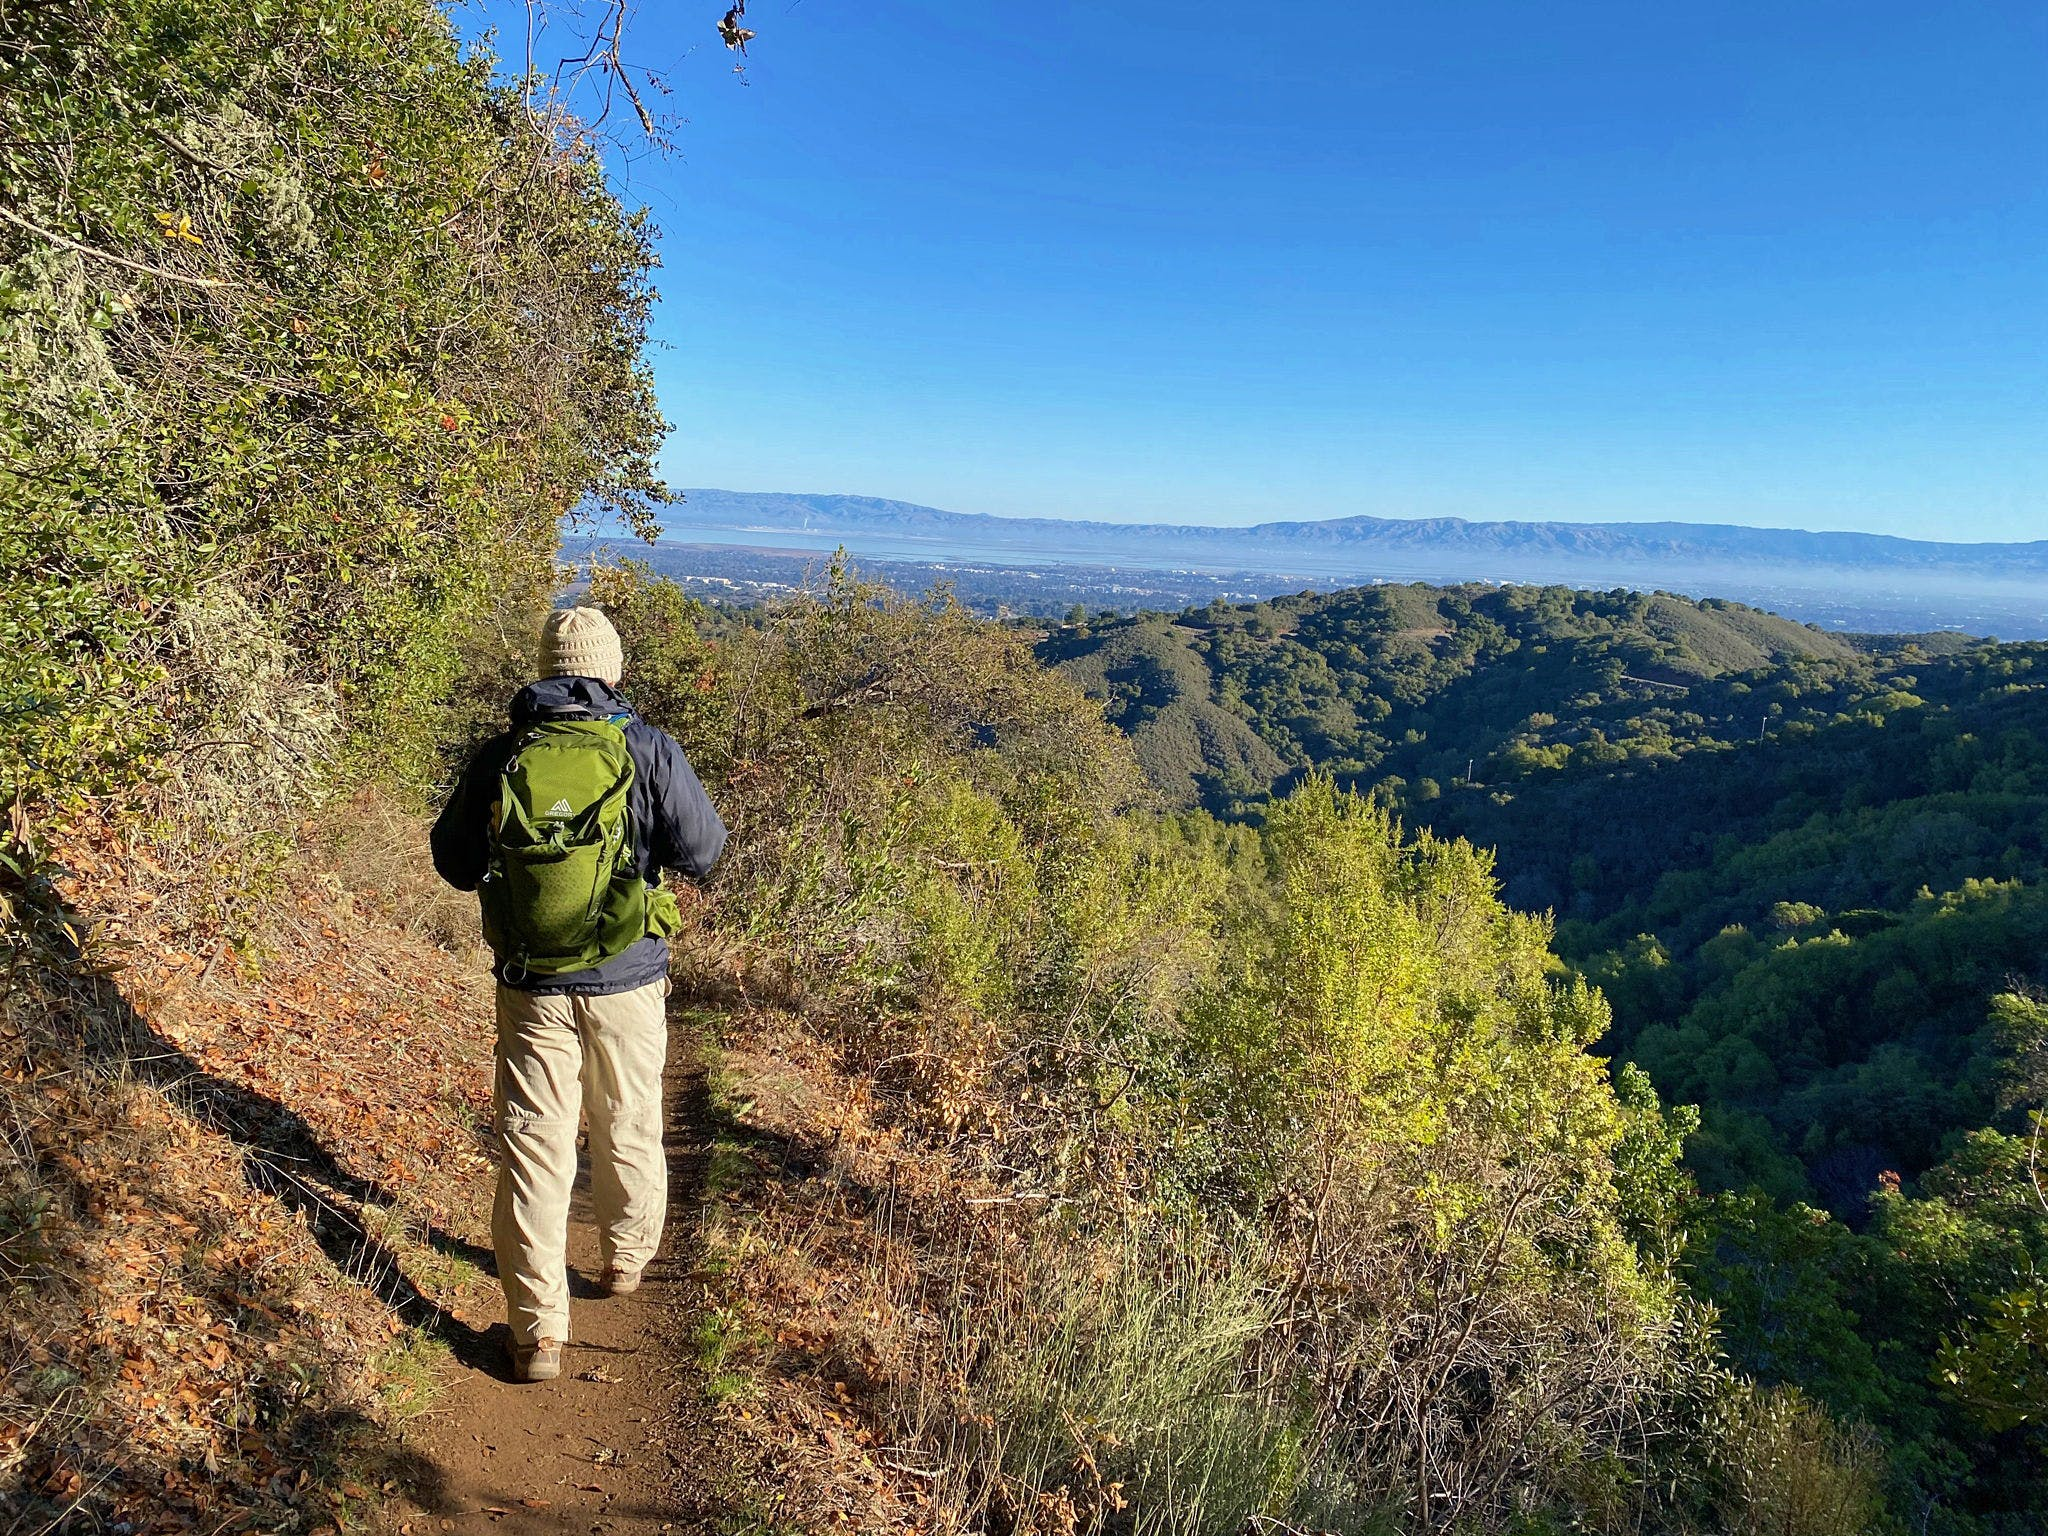 Man hiking a trail overlooking Palo Alto at Foothills Park